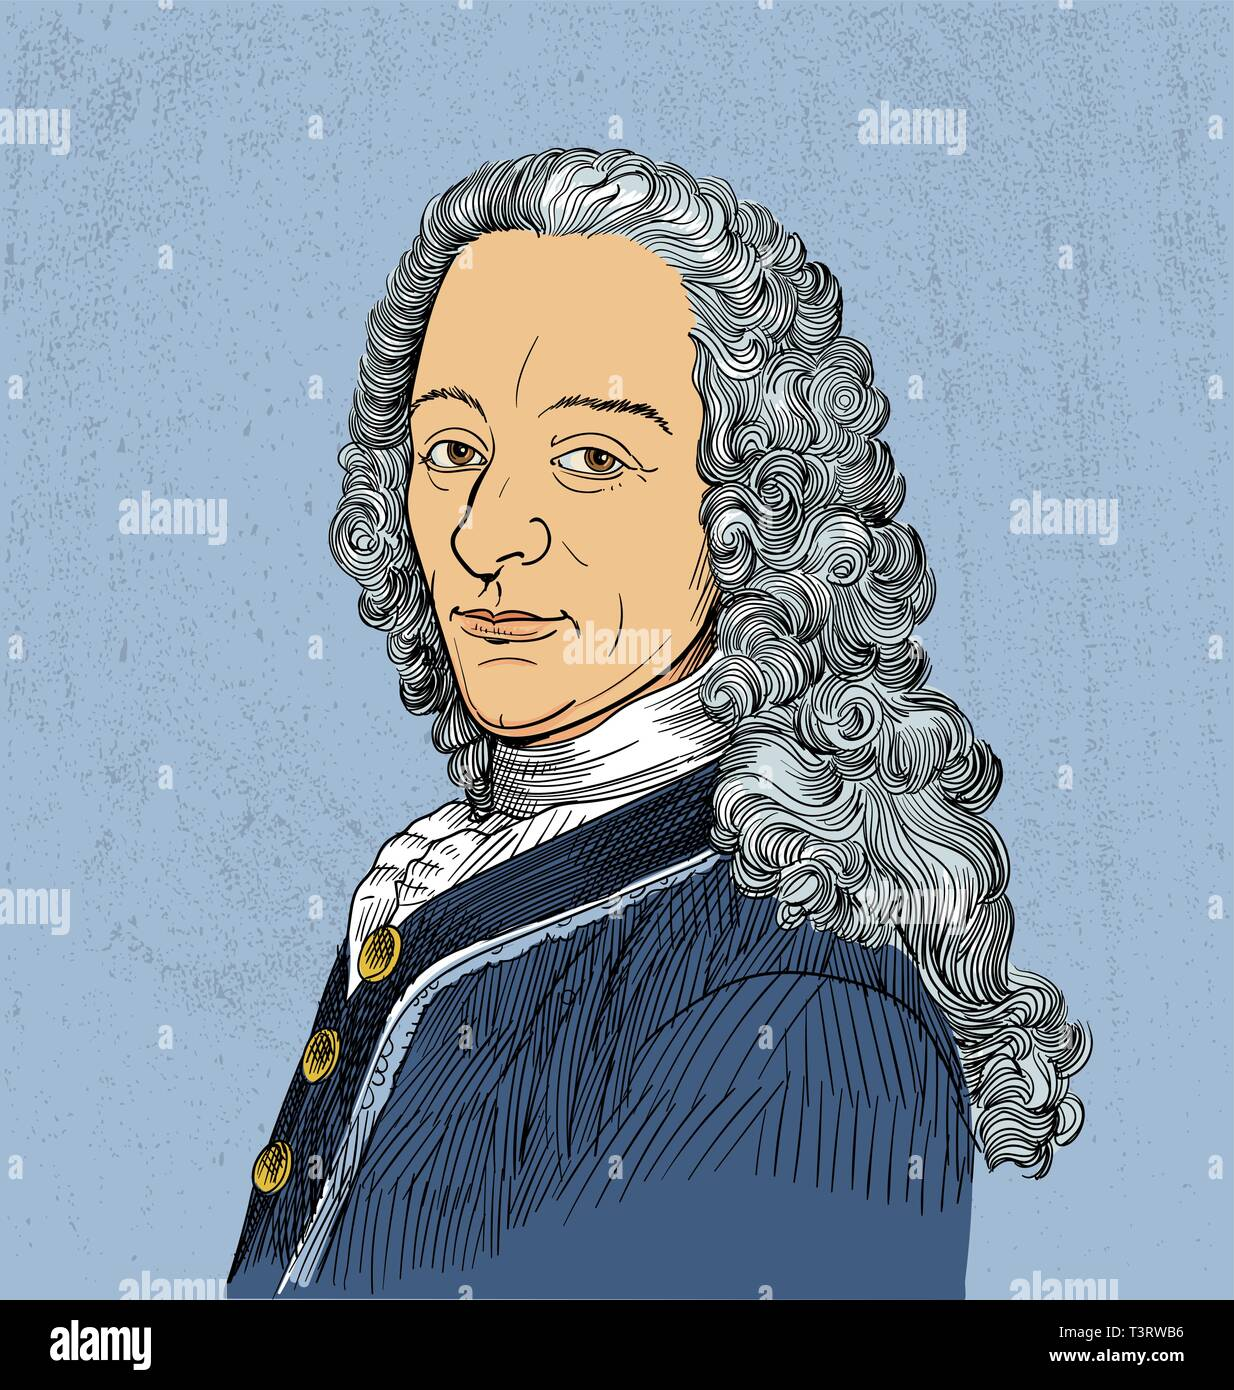 Voltaire, French philosopher, poet, historian, essayist, playwright and autobiographer - Stock Image